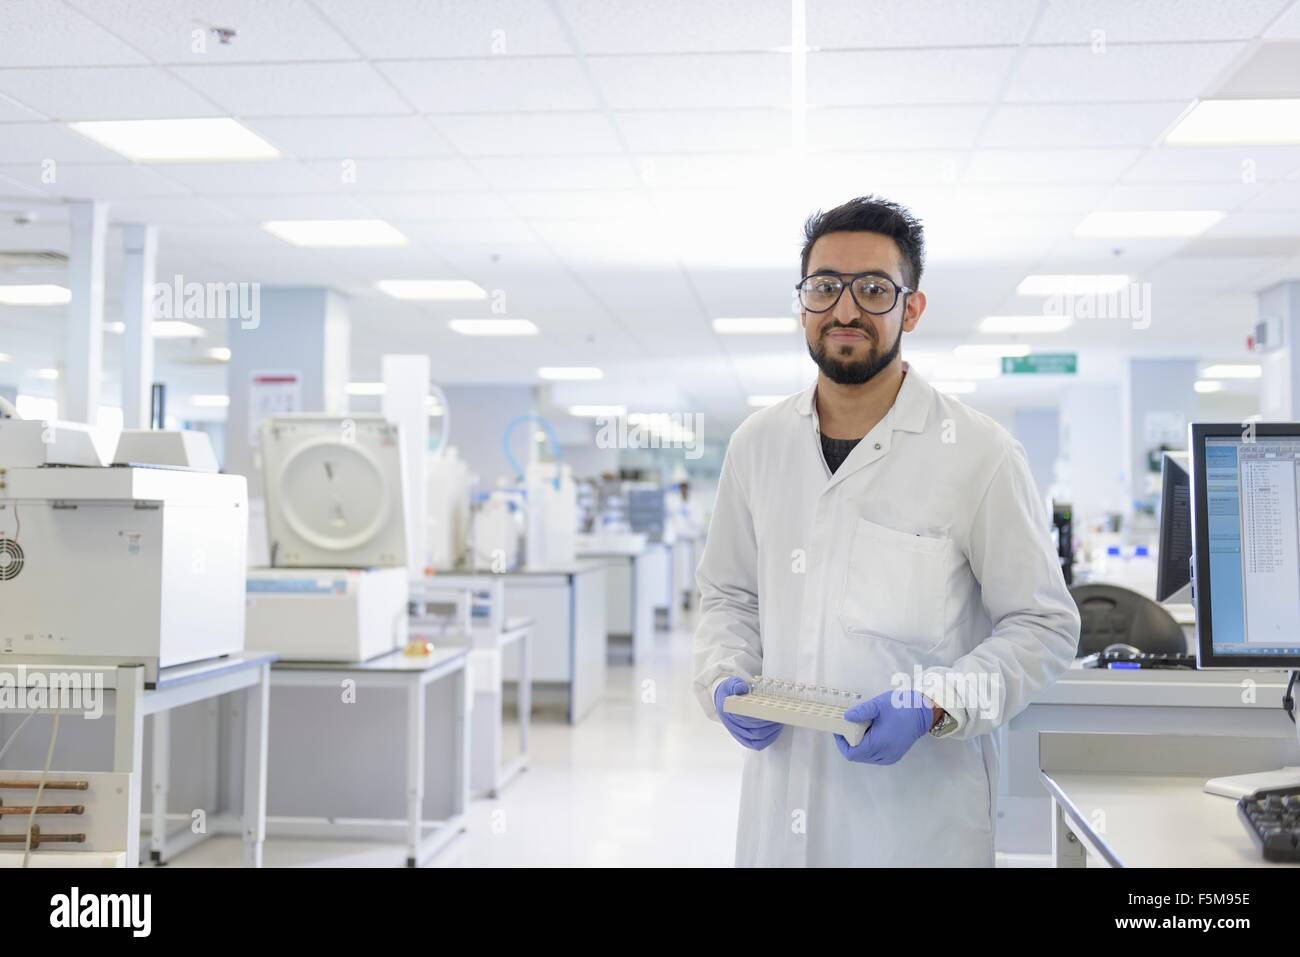 Portrait of scientist with analyst samples in testing laboratory - Stock Image